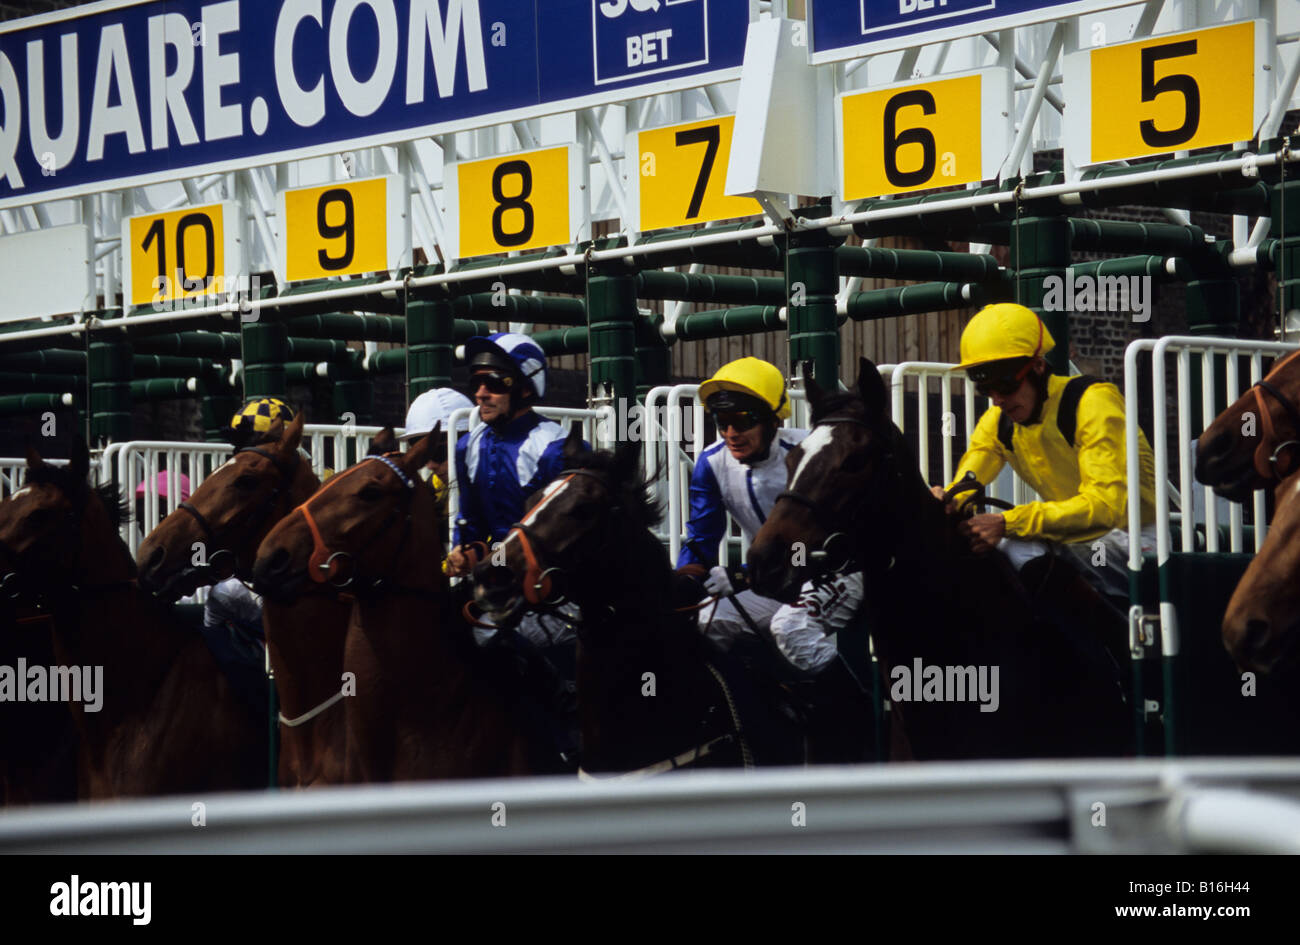 Horses Emerging From Stalls At The Start Of A Race At Chester Racecourse - Stock Image